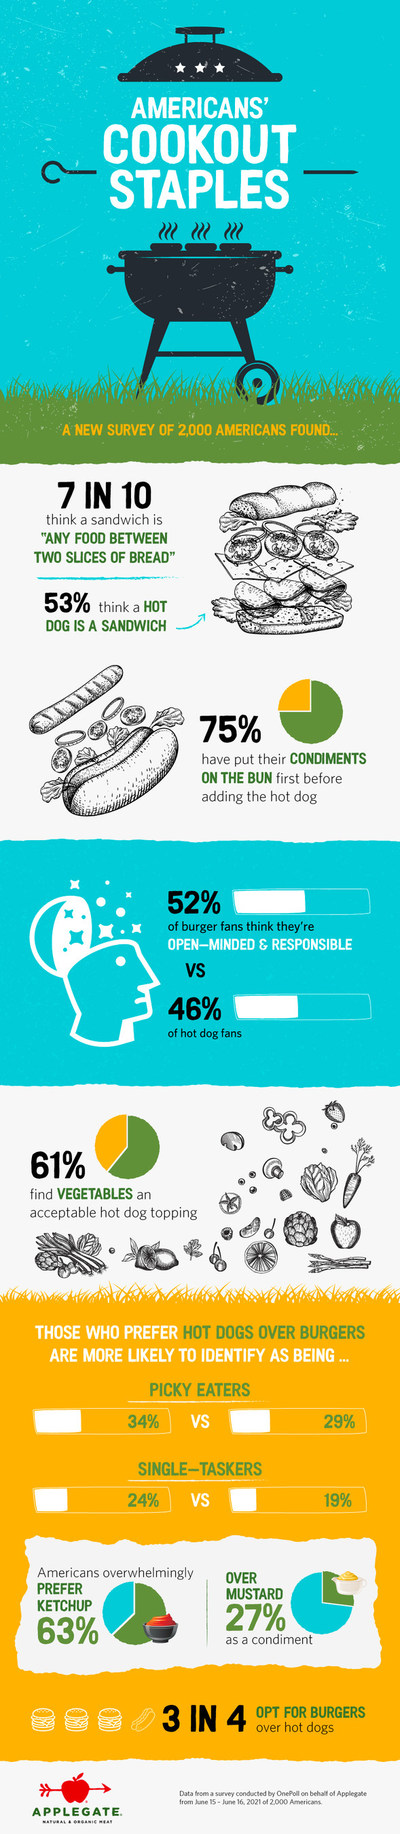 America's Cookout Staples, Infographic Created by OnePoll